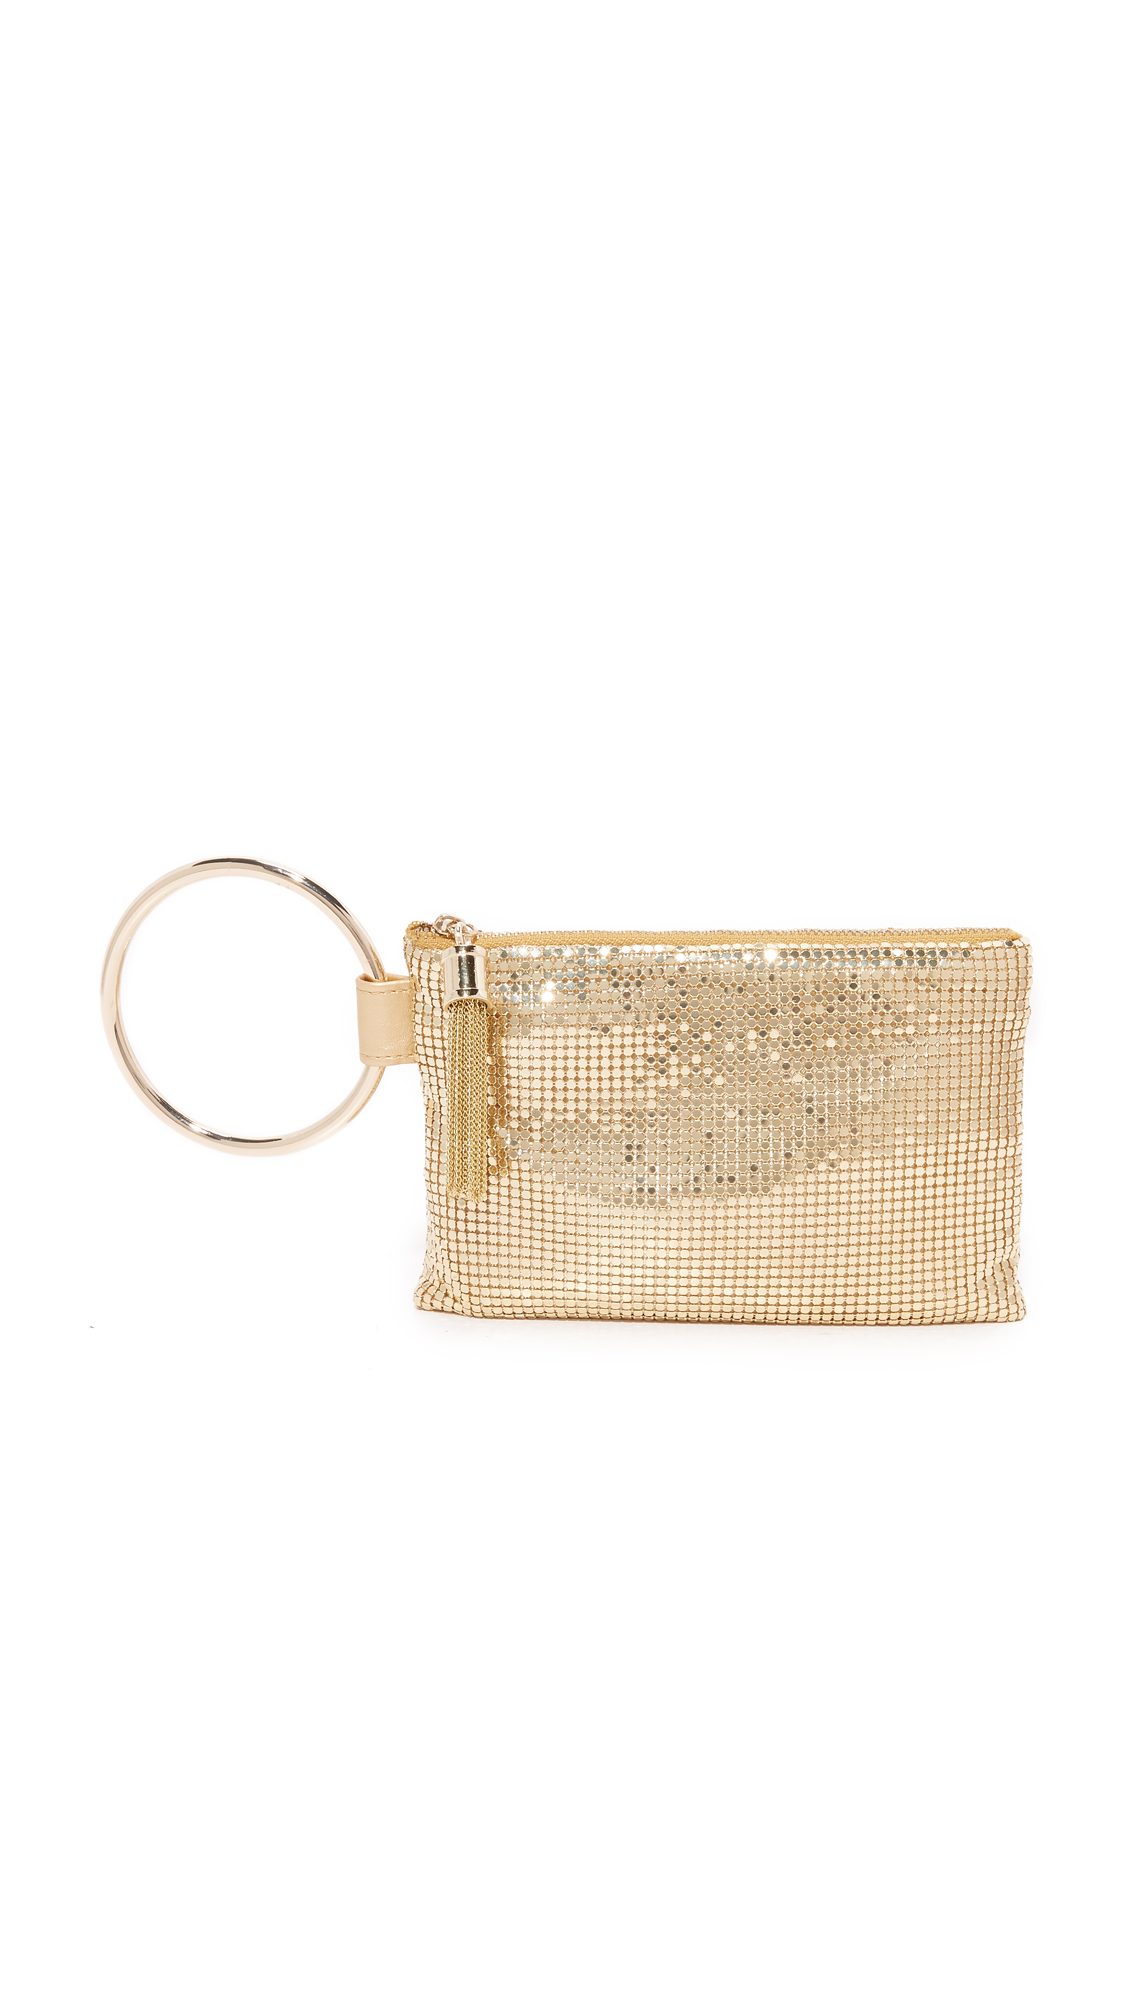 whiting davis female whiting davis ring tassle pouch gold